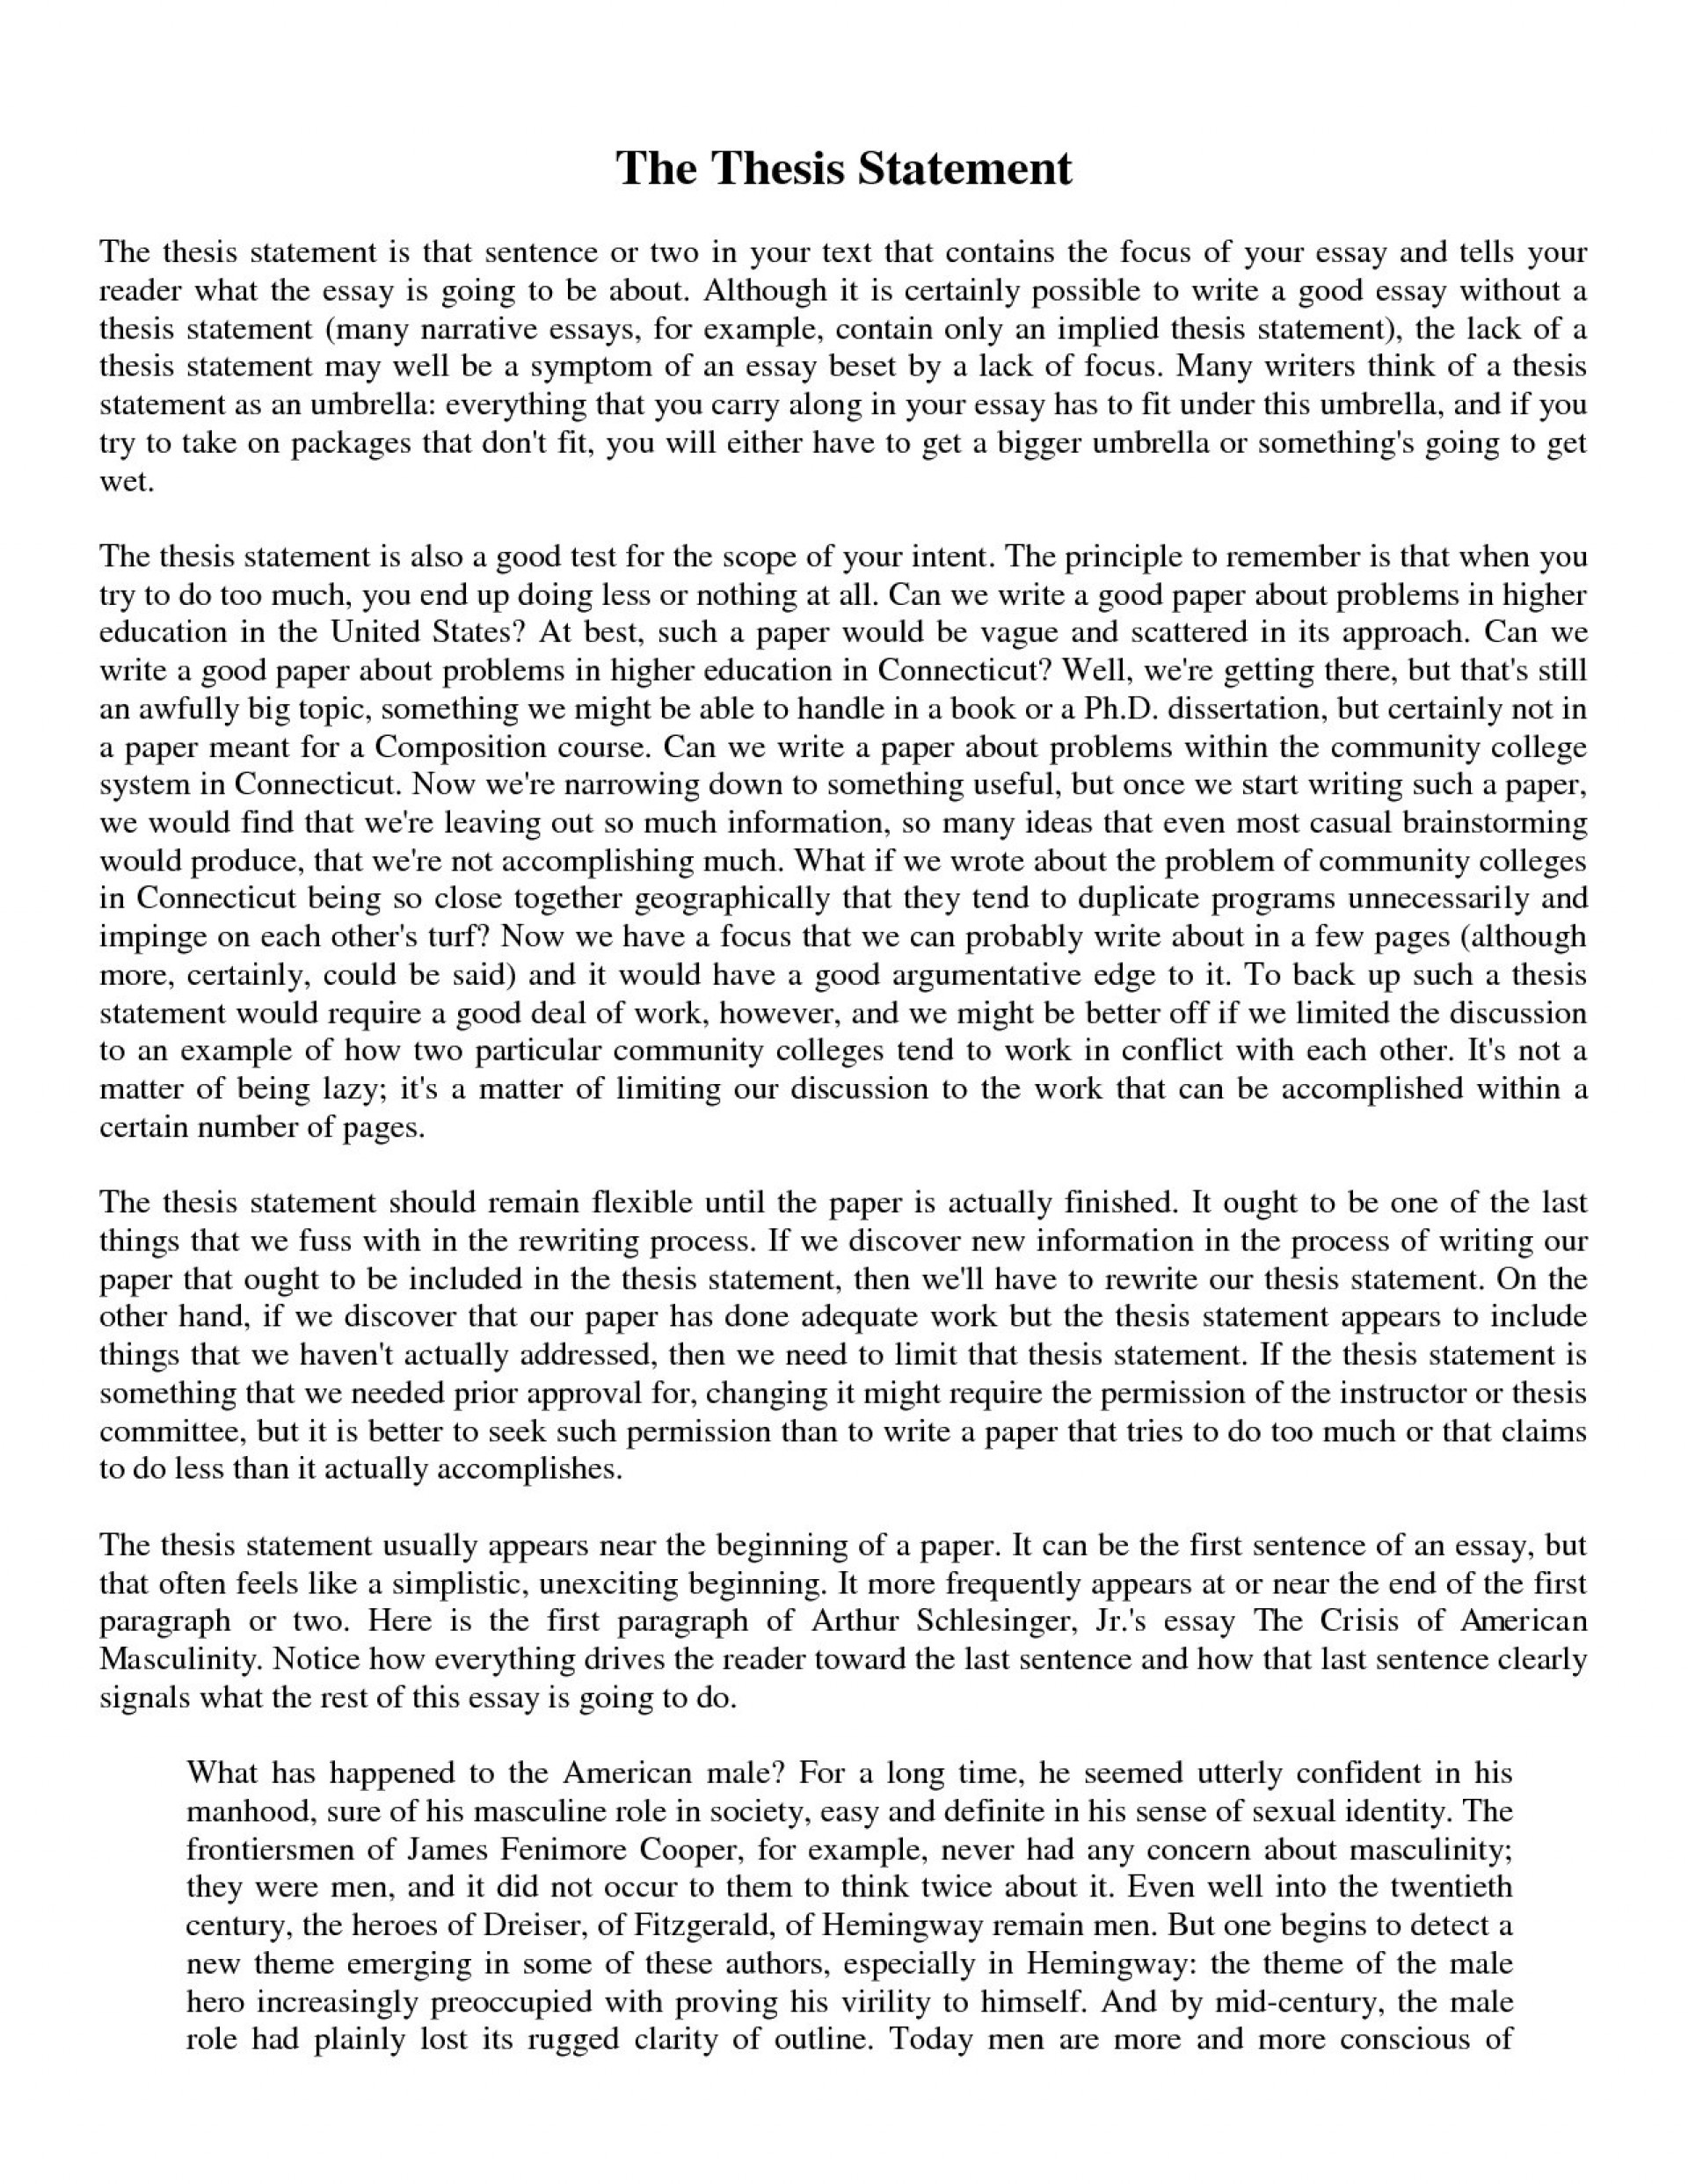 008 What Is Thesis Statement In An Essay Lt1odxucuo Fascinating A The Purpose Of Argumentative Informative 1920